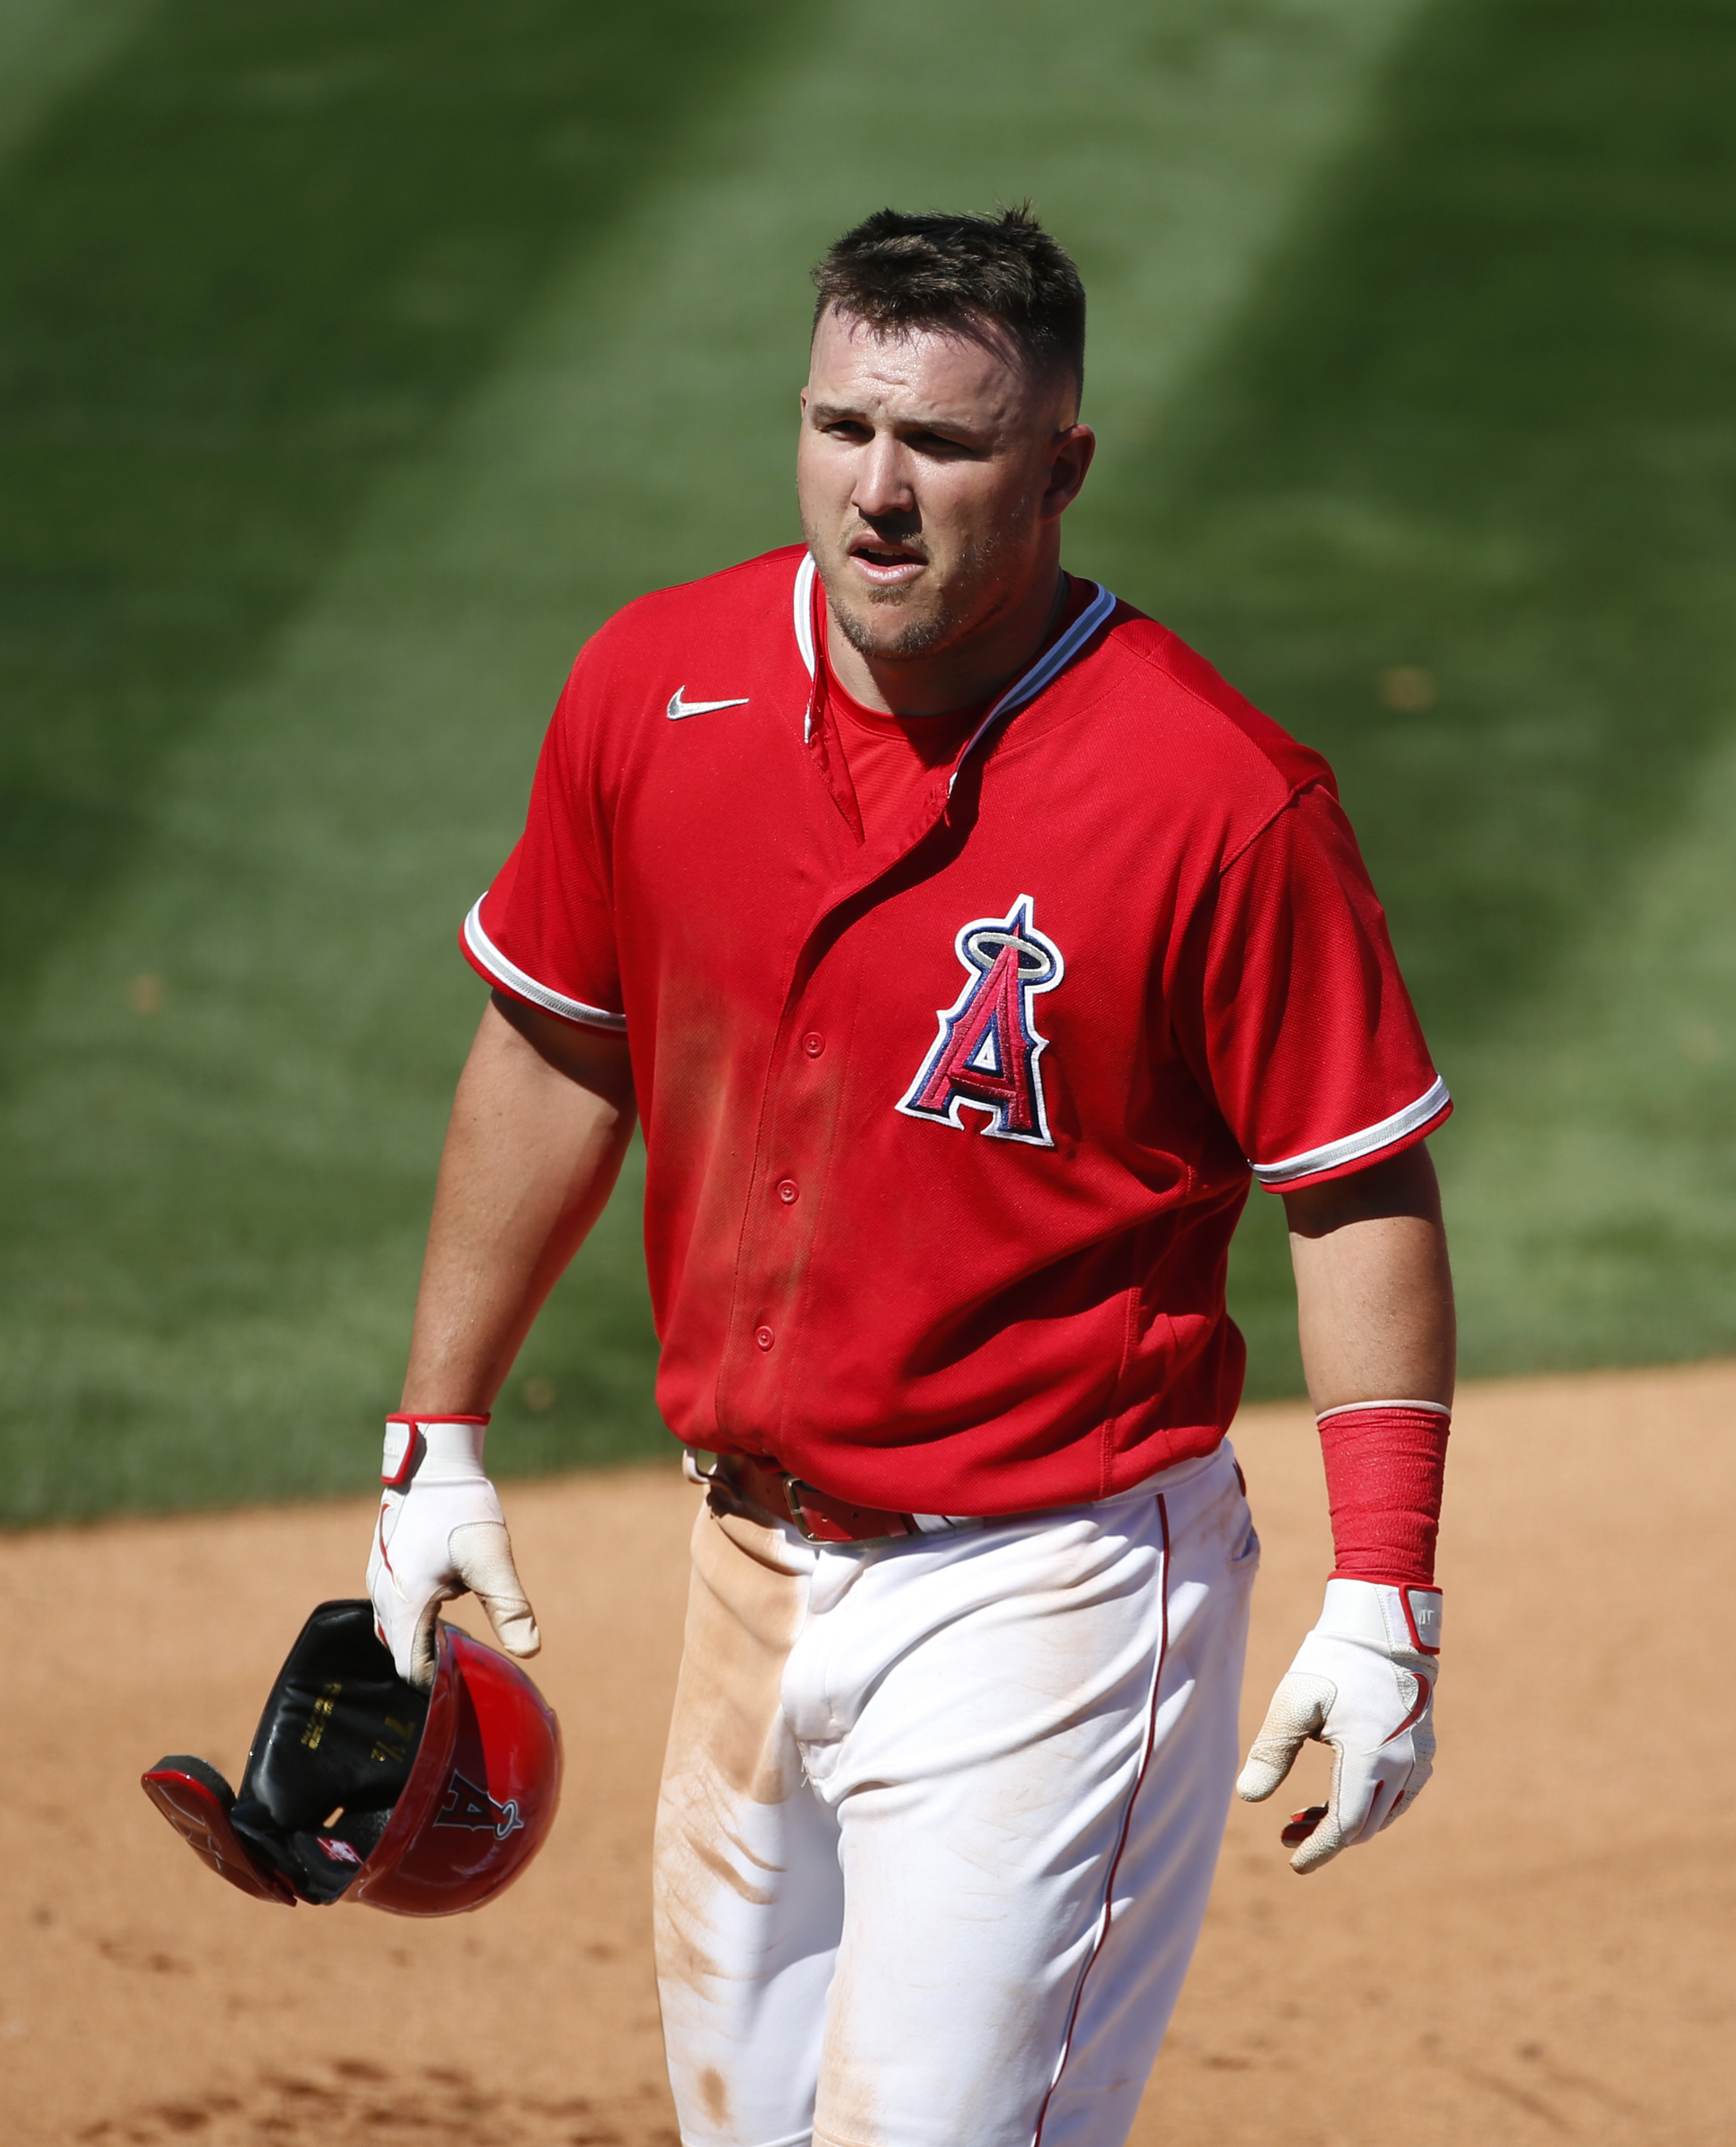 Present day Mike Trout in Angels uniform.